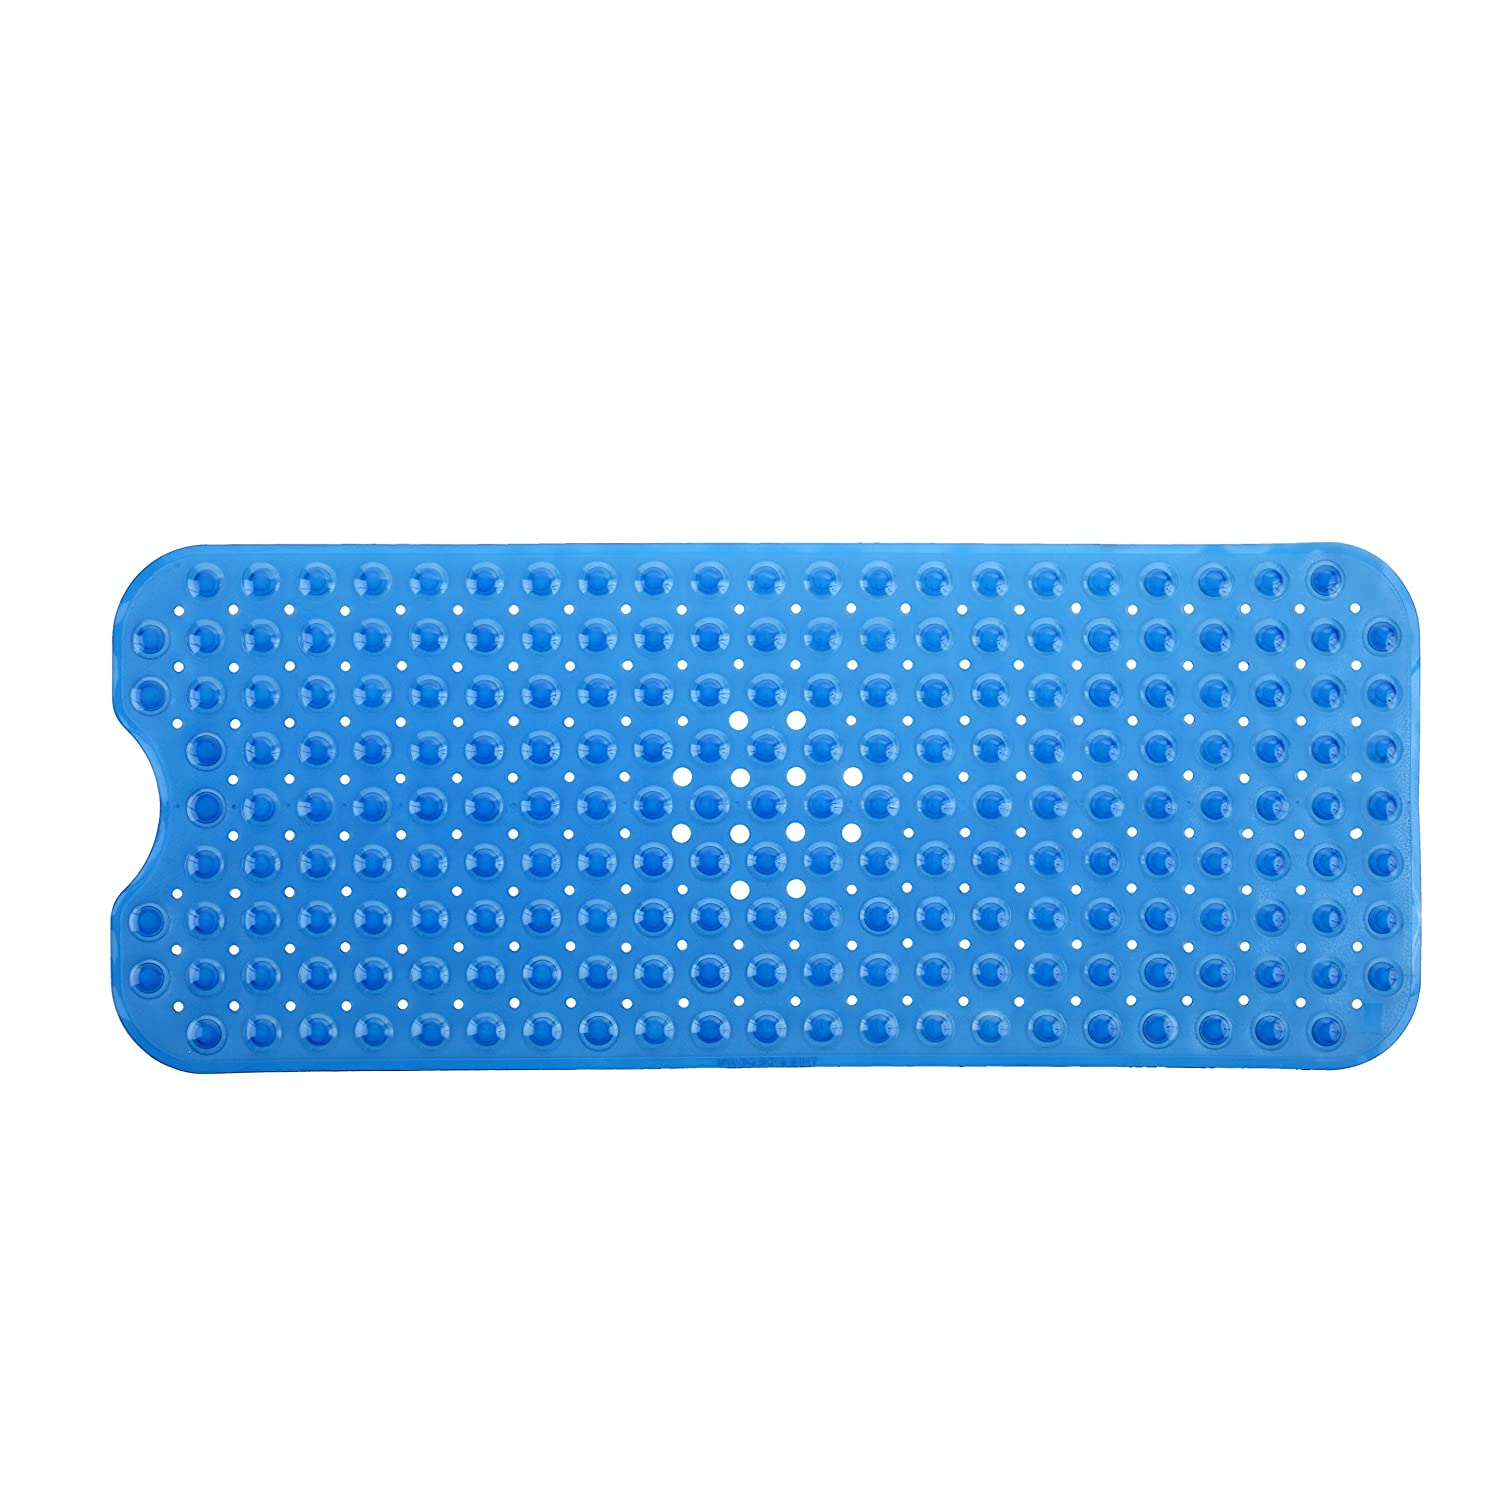 Amazon.com: SlipX Solutions Blue Extra Long Bath Mat Adds Non-Slip ...